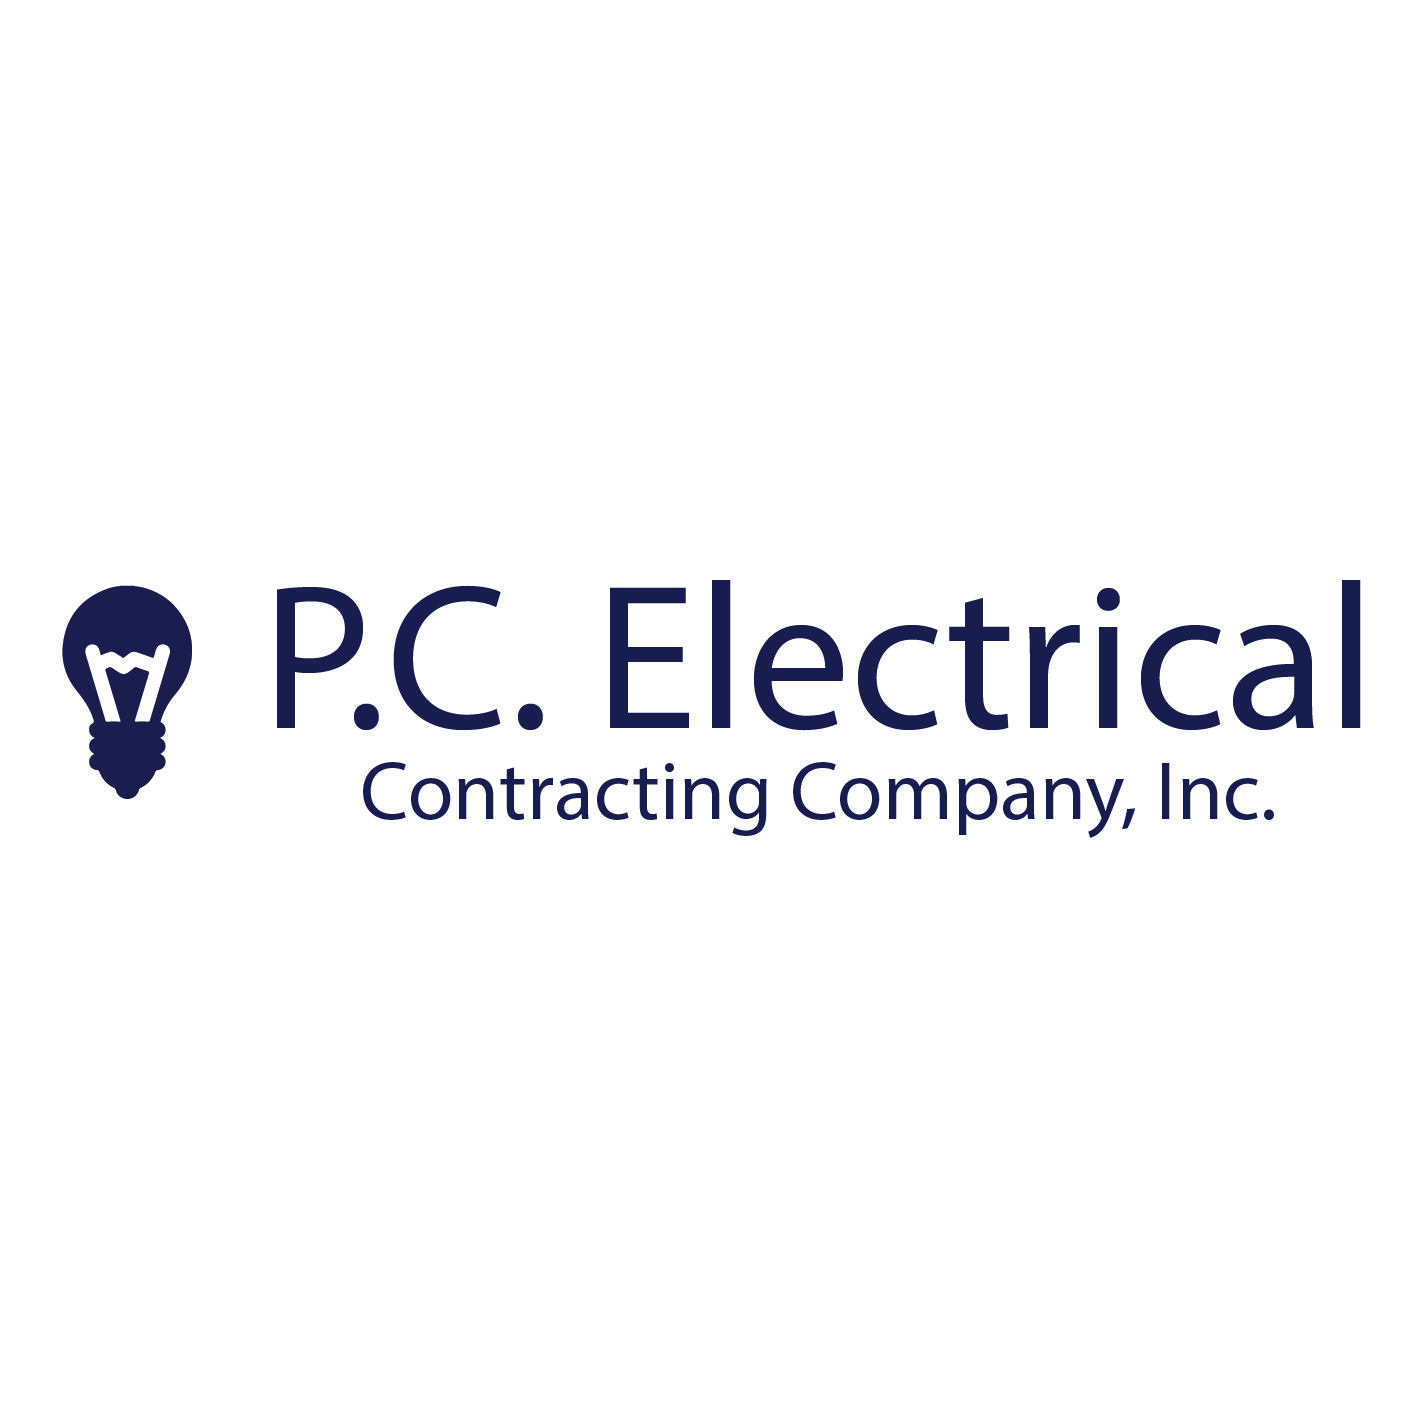 P.C. Electrical Contracting Company, Inc.